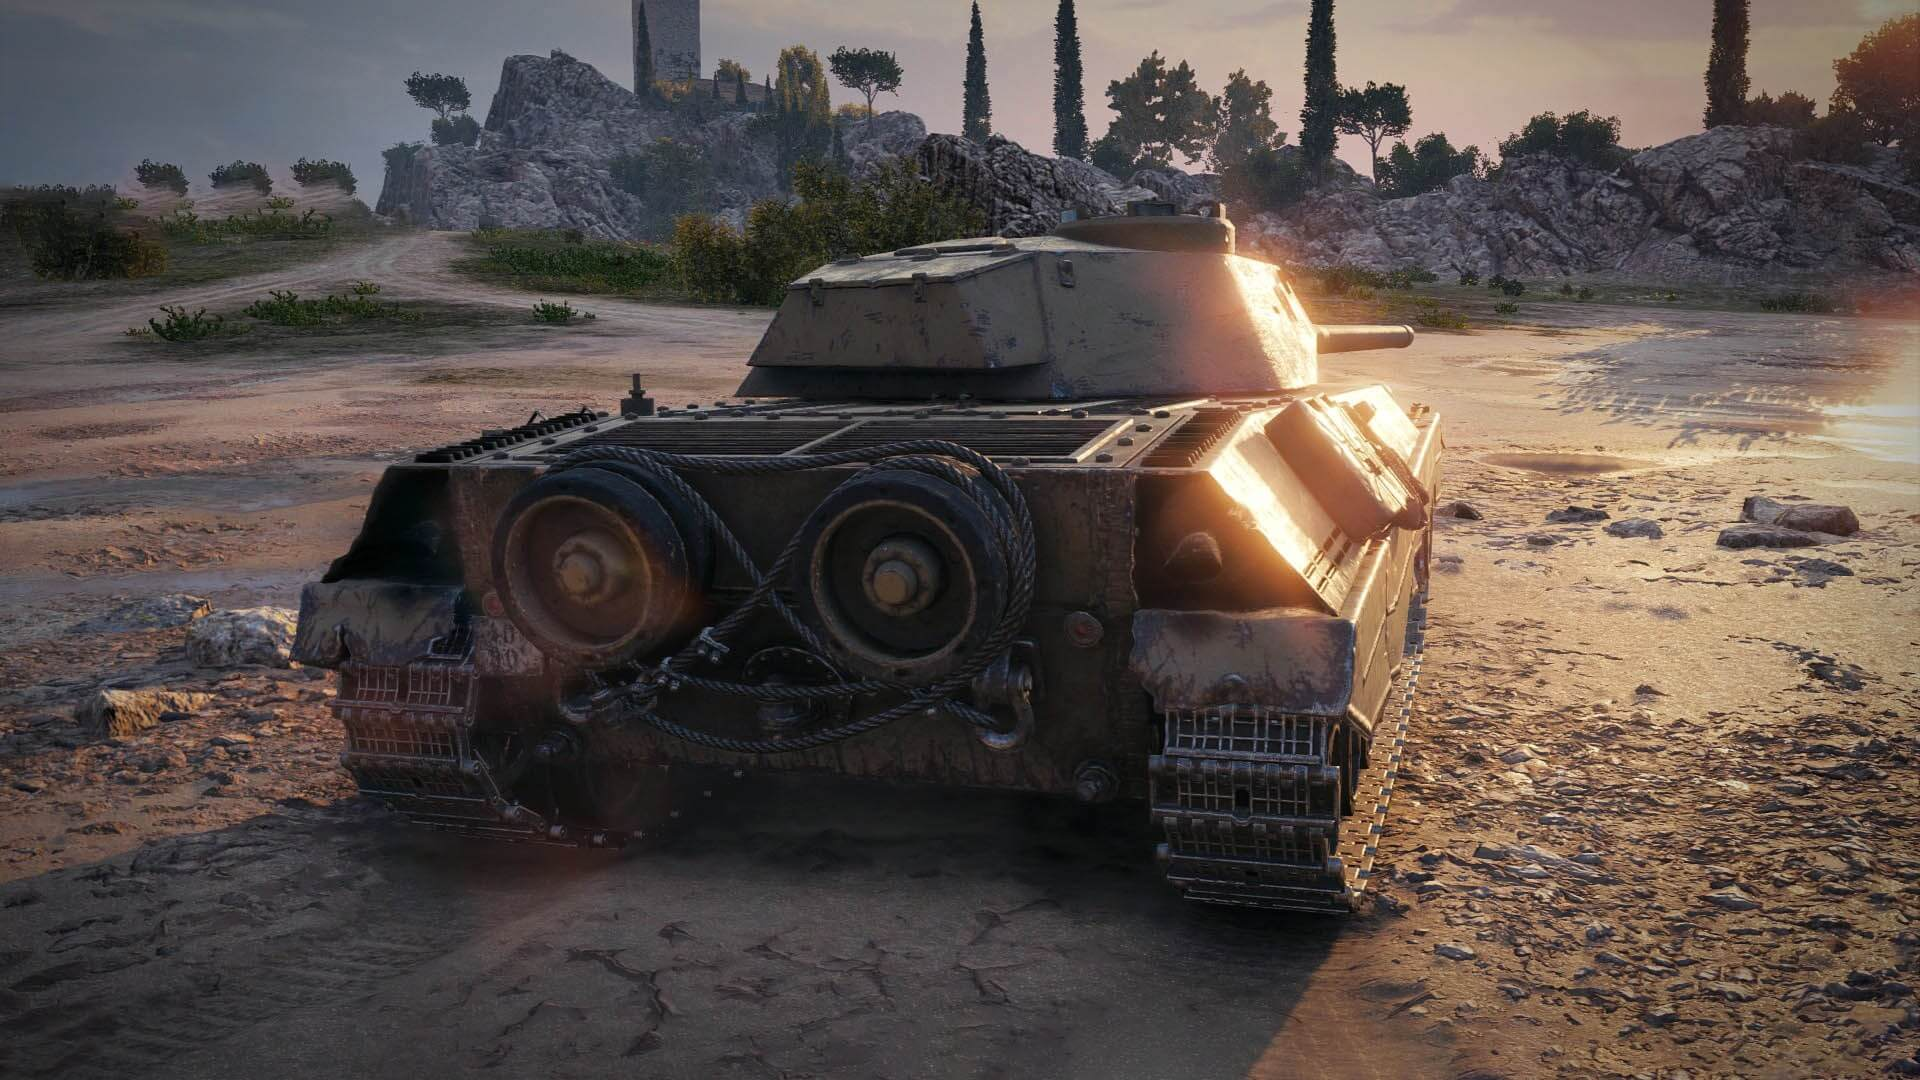 World of Tanks enCore RT demo allows ray tracing on non-RTX graphics cards